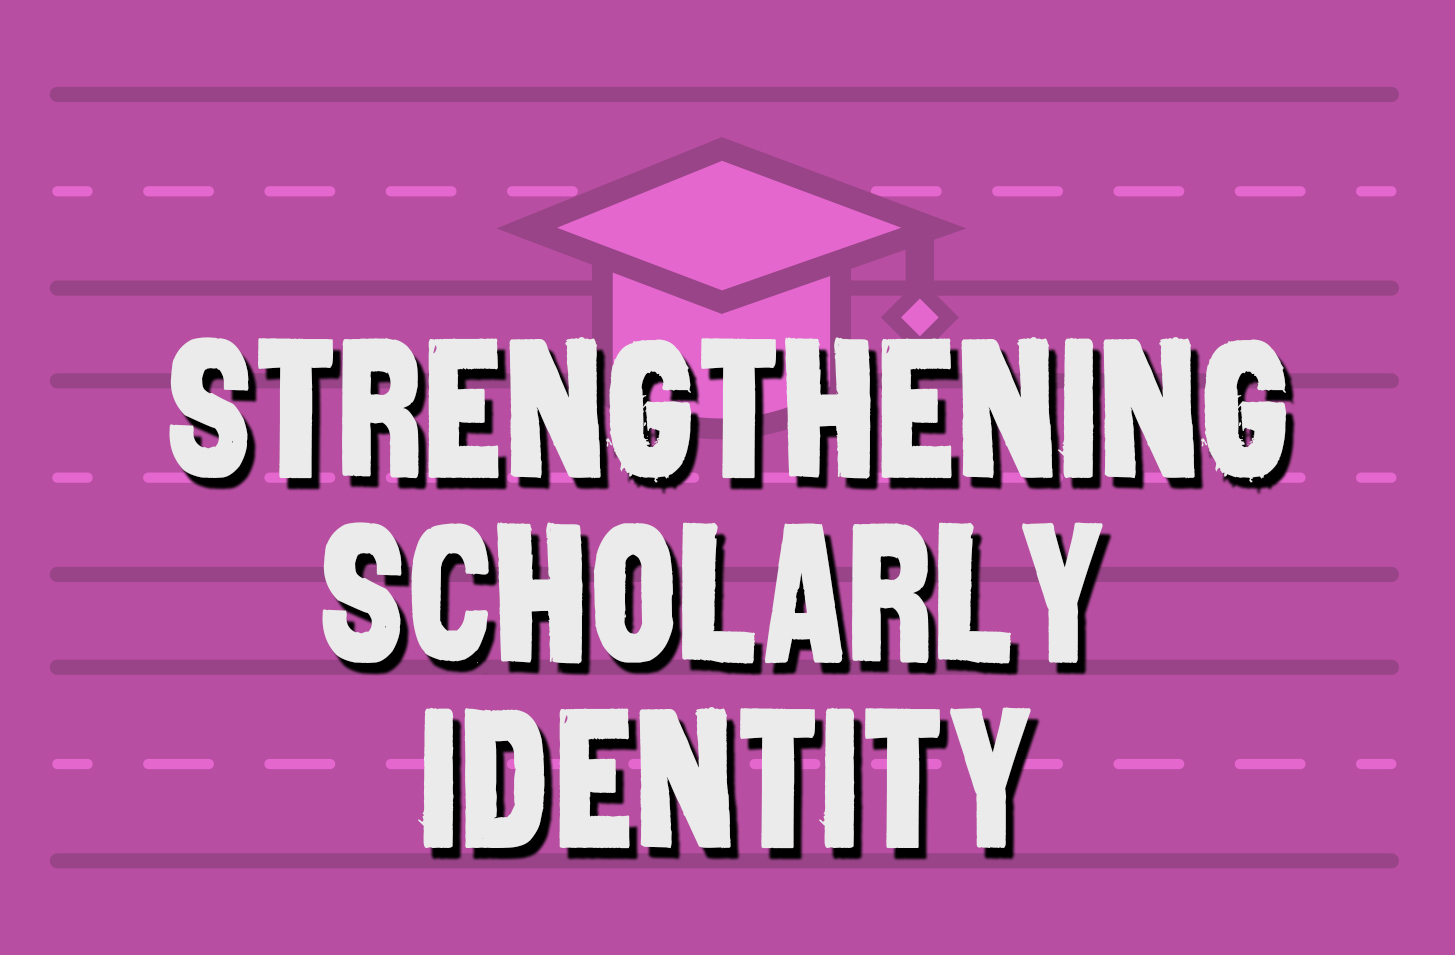 Strengthening_Scholarly_Identity.jpg